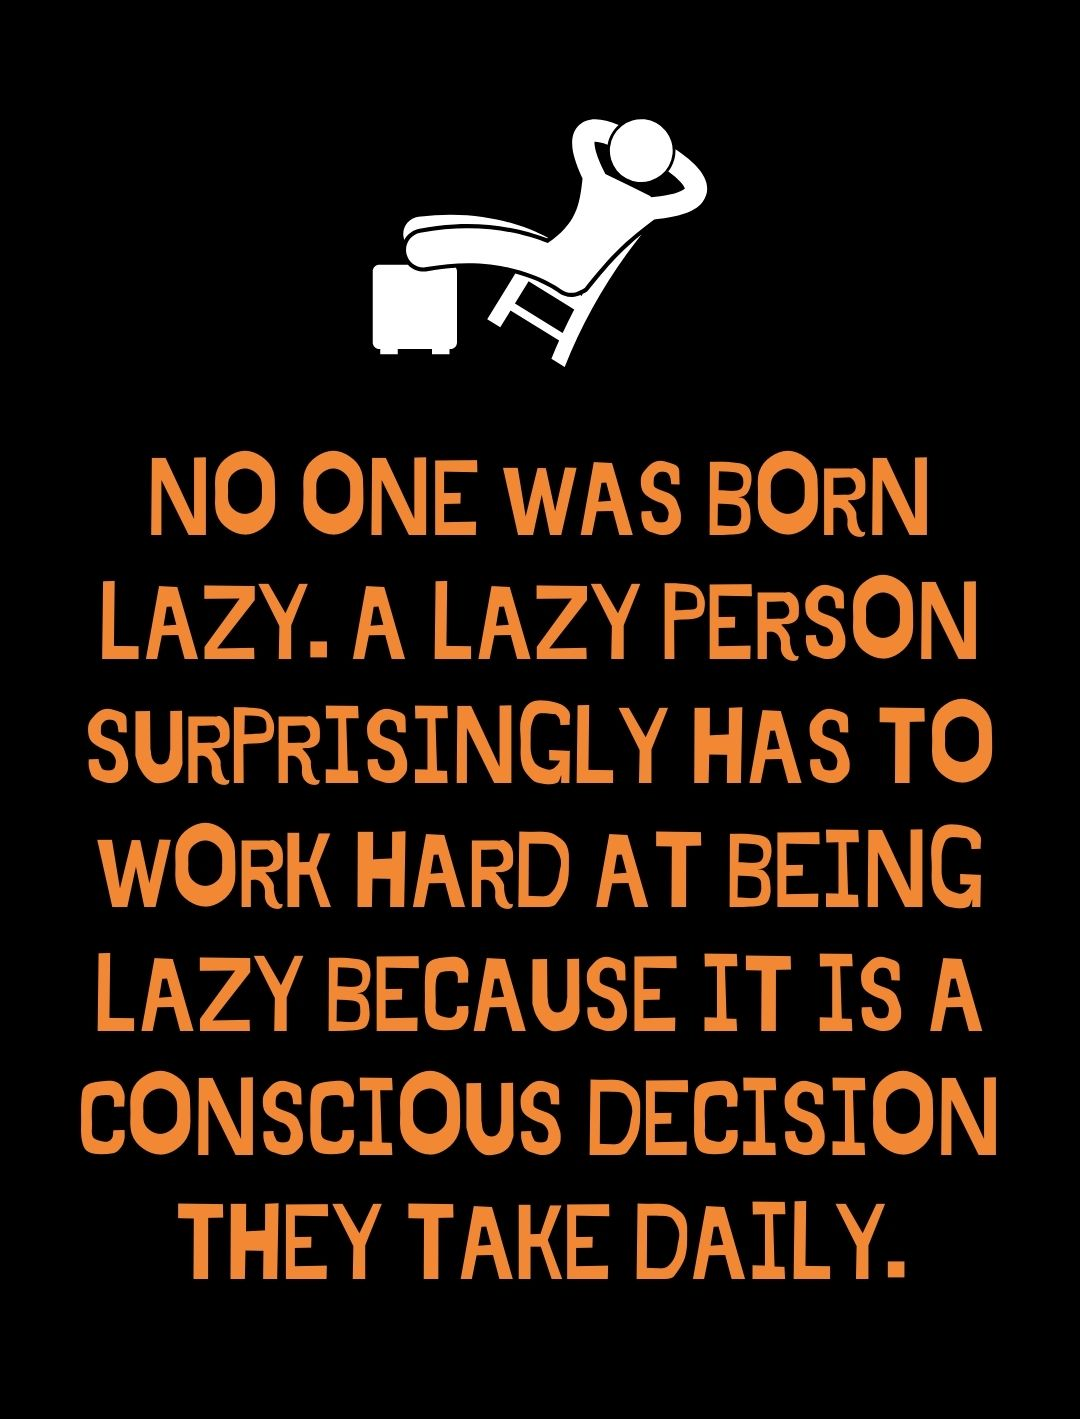 No one was born lazy. A lazy person surprisingly has to work hard at being lazy because it is a conscious decision they take daily.